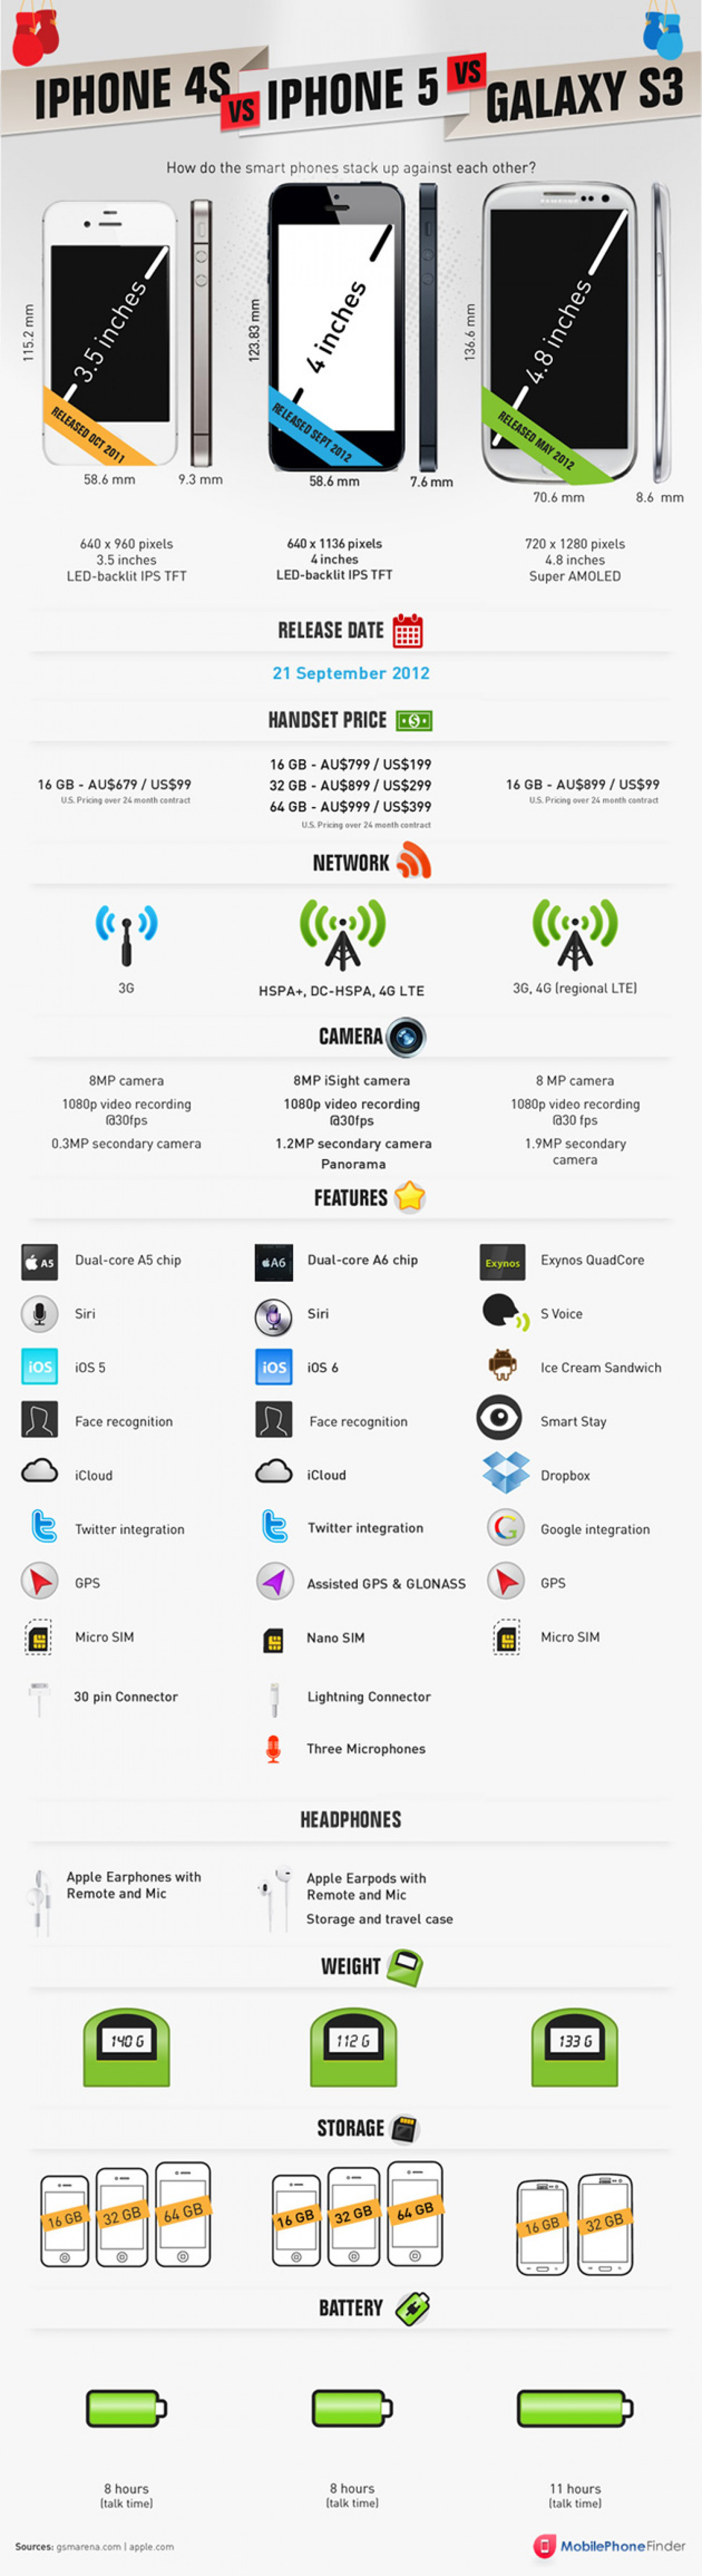 iPhone 5 vs. iPhone 4S vs. Samsung Galaxy S3 Infographic